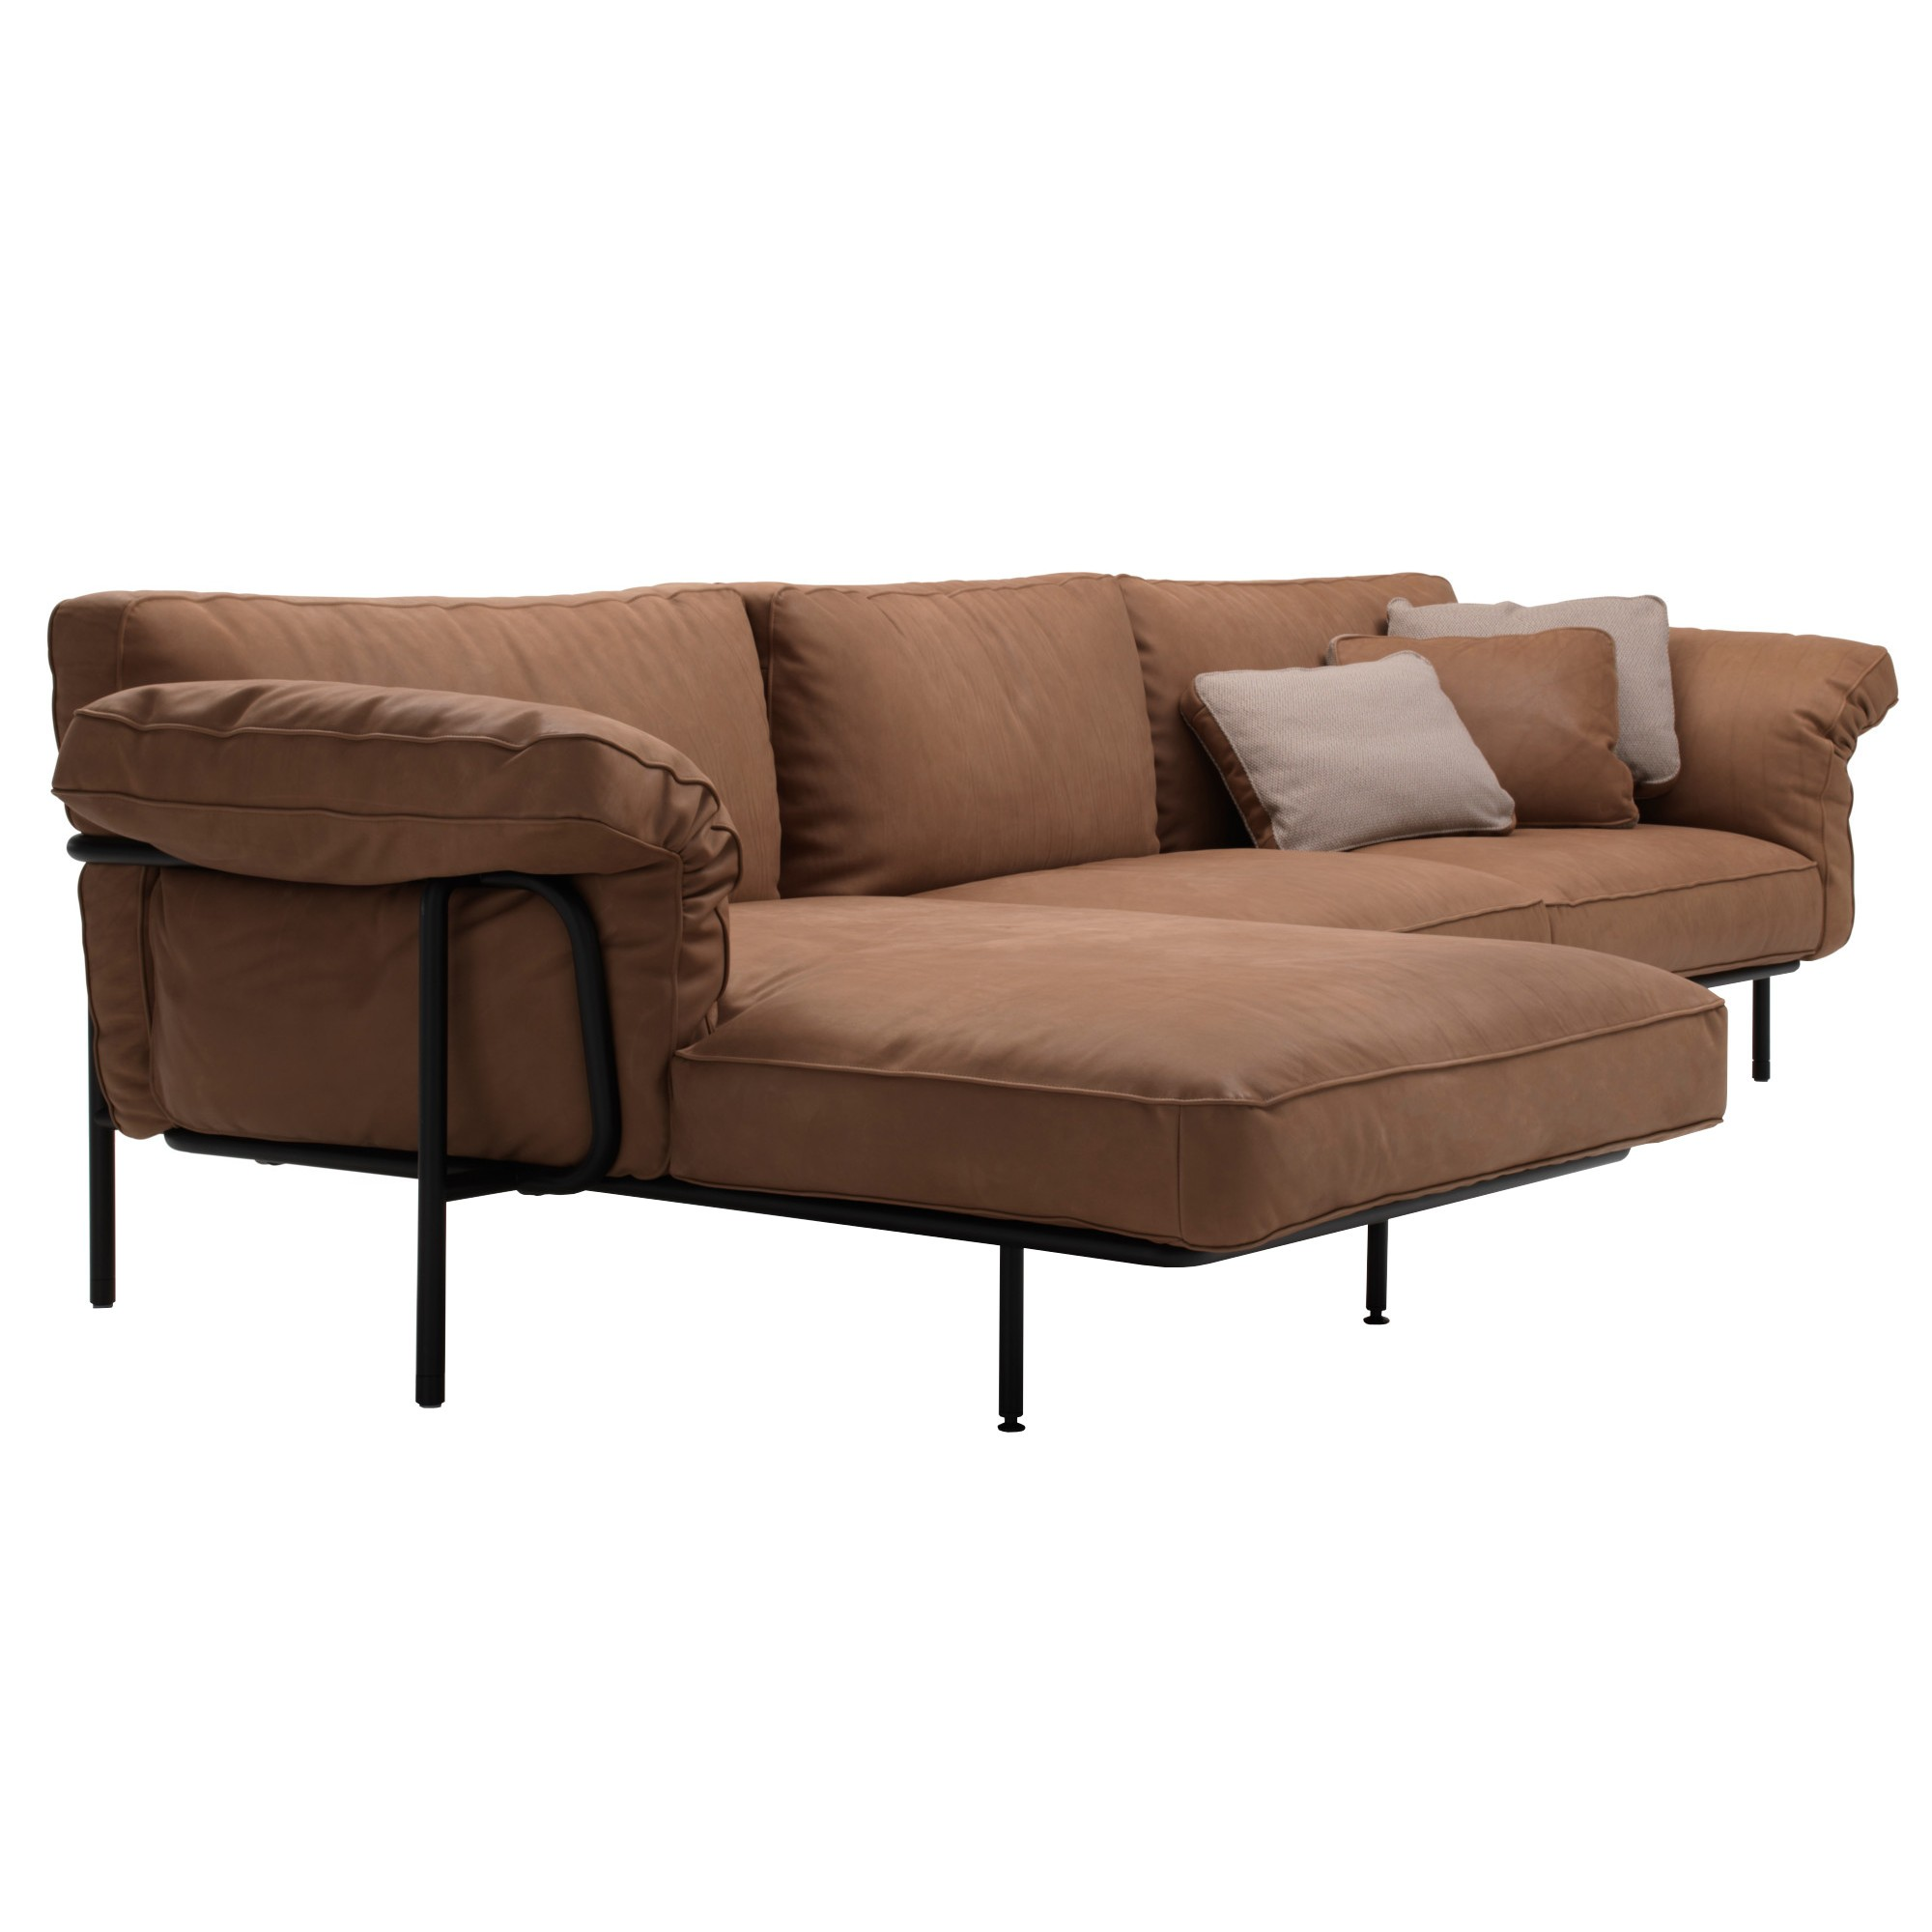 DS-610 SOFA WITH CHAISE LONGUE | Sofas with Chaise Longue ...